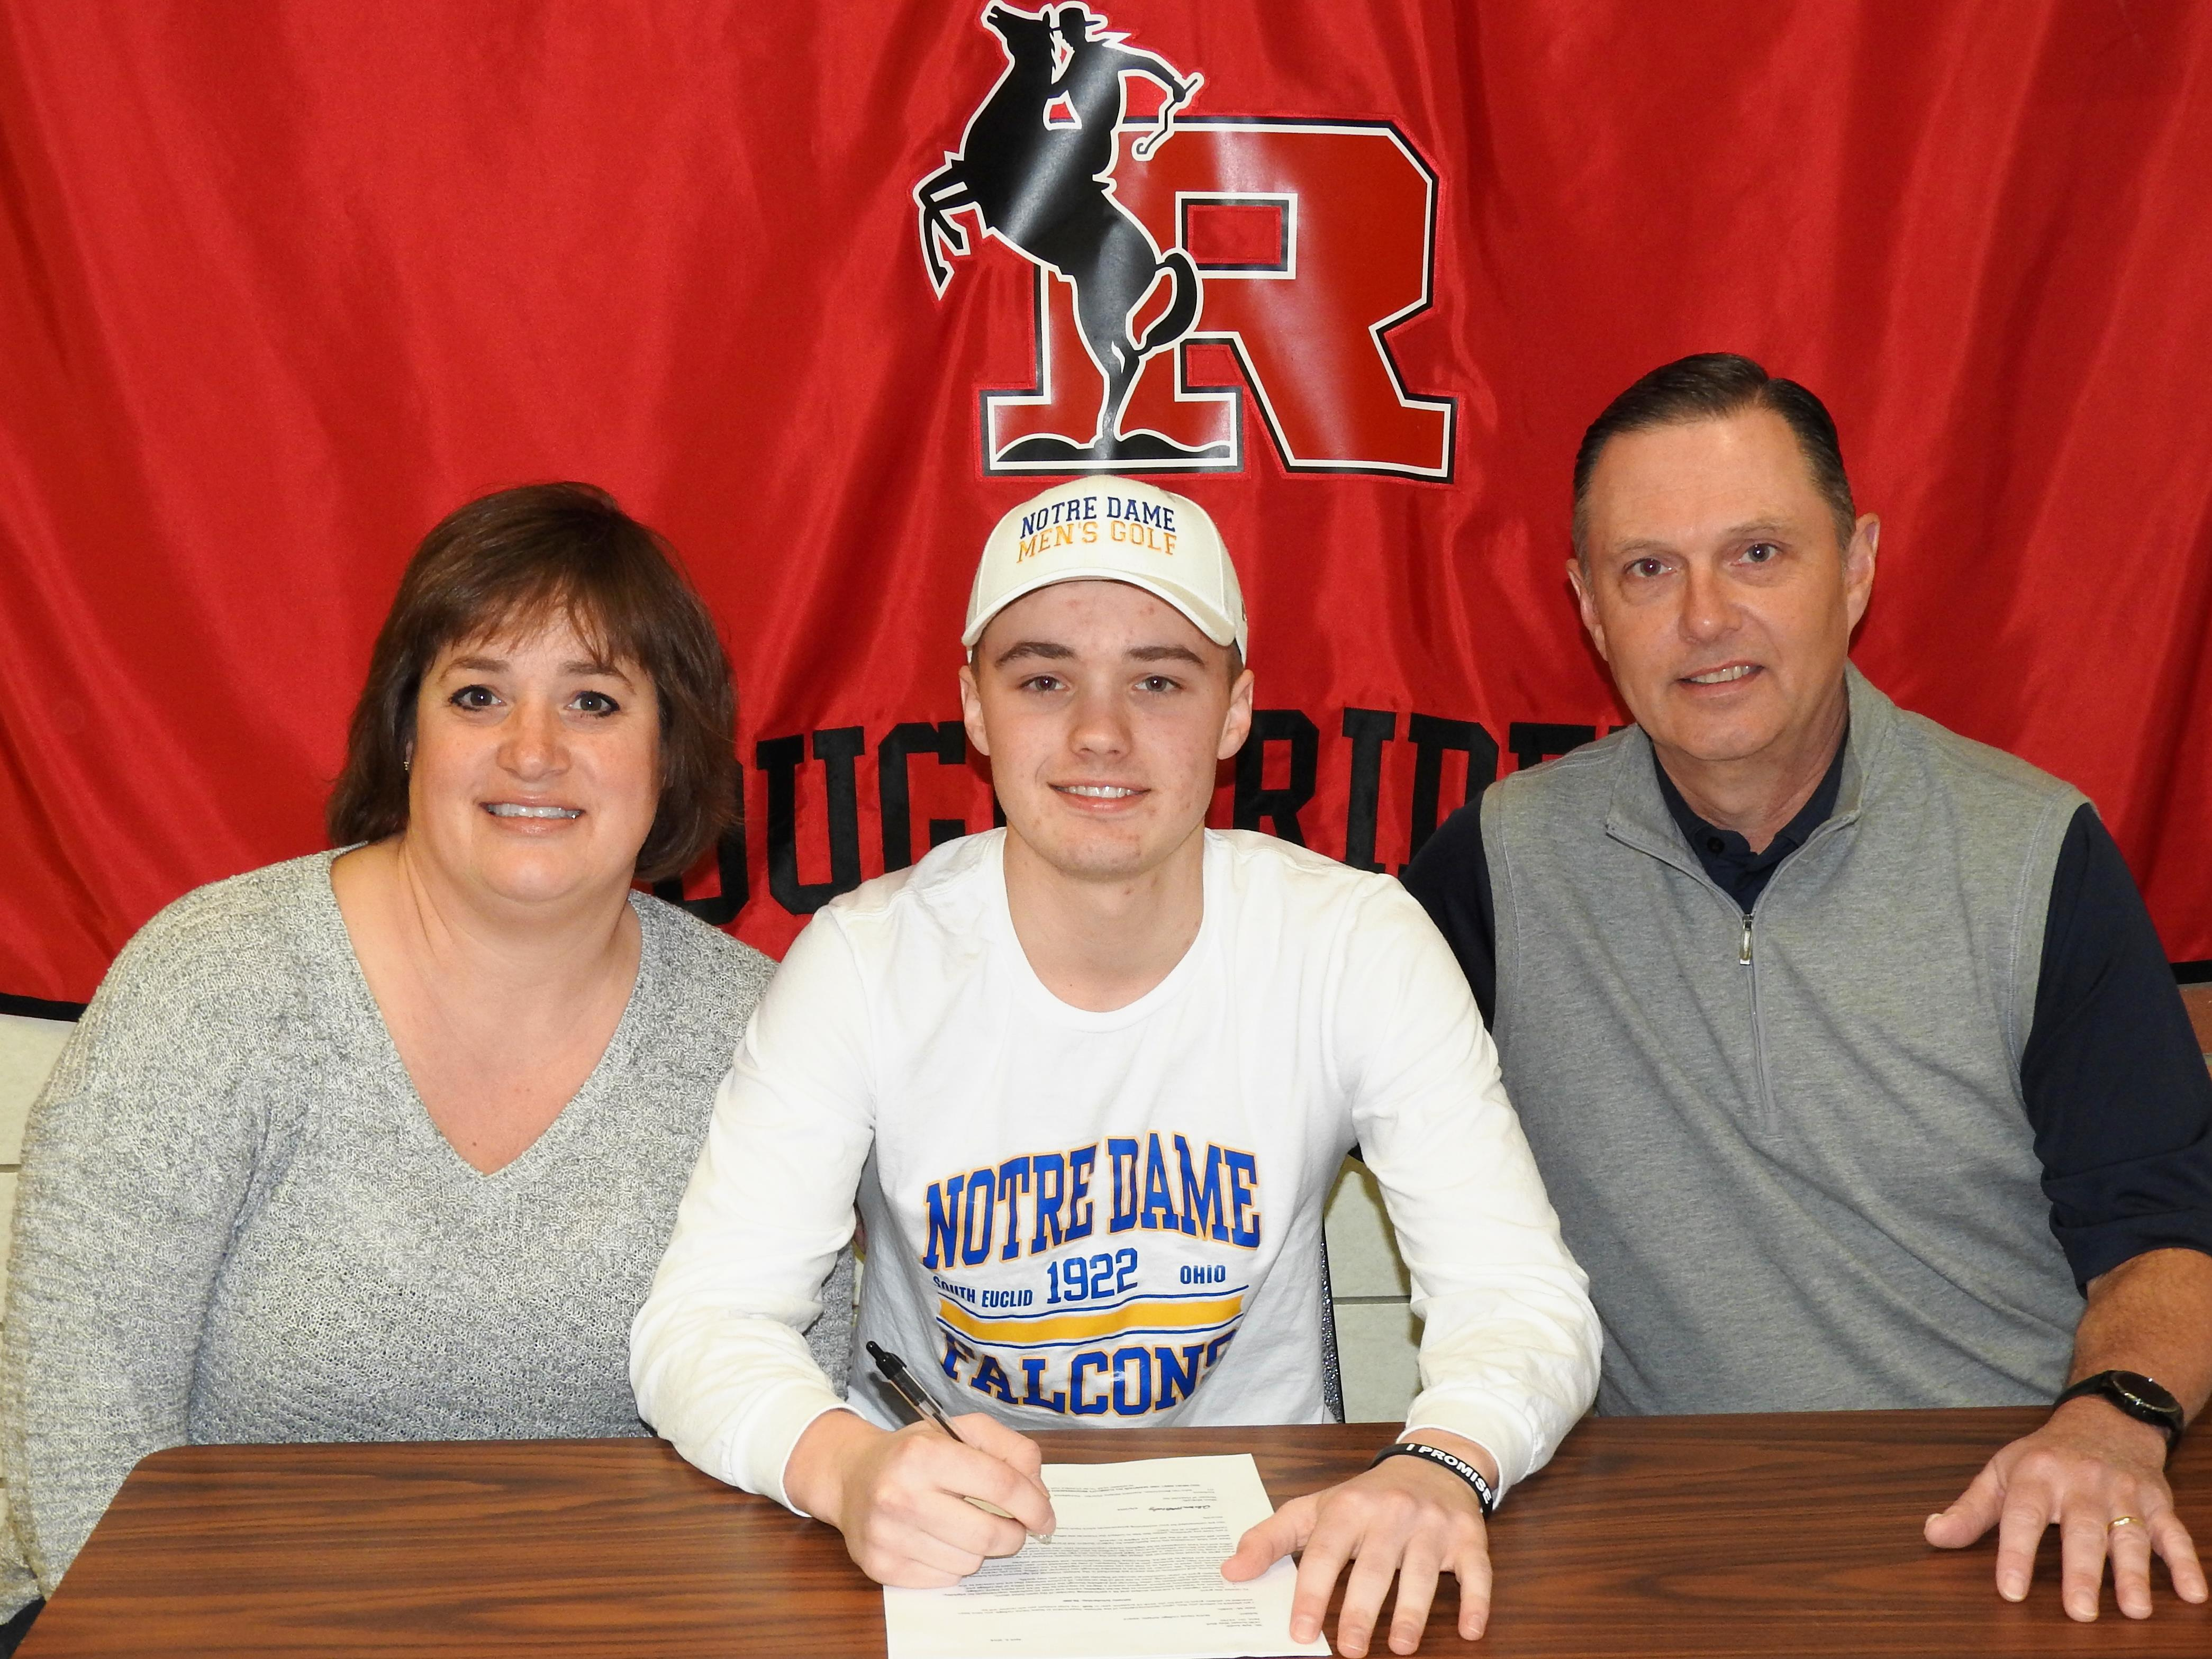 Kyle Smith to Attend Notre Dame College in the Fall